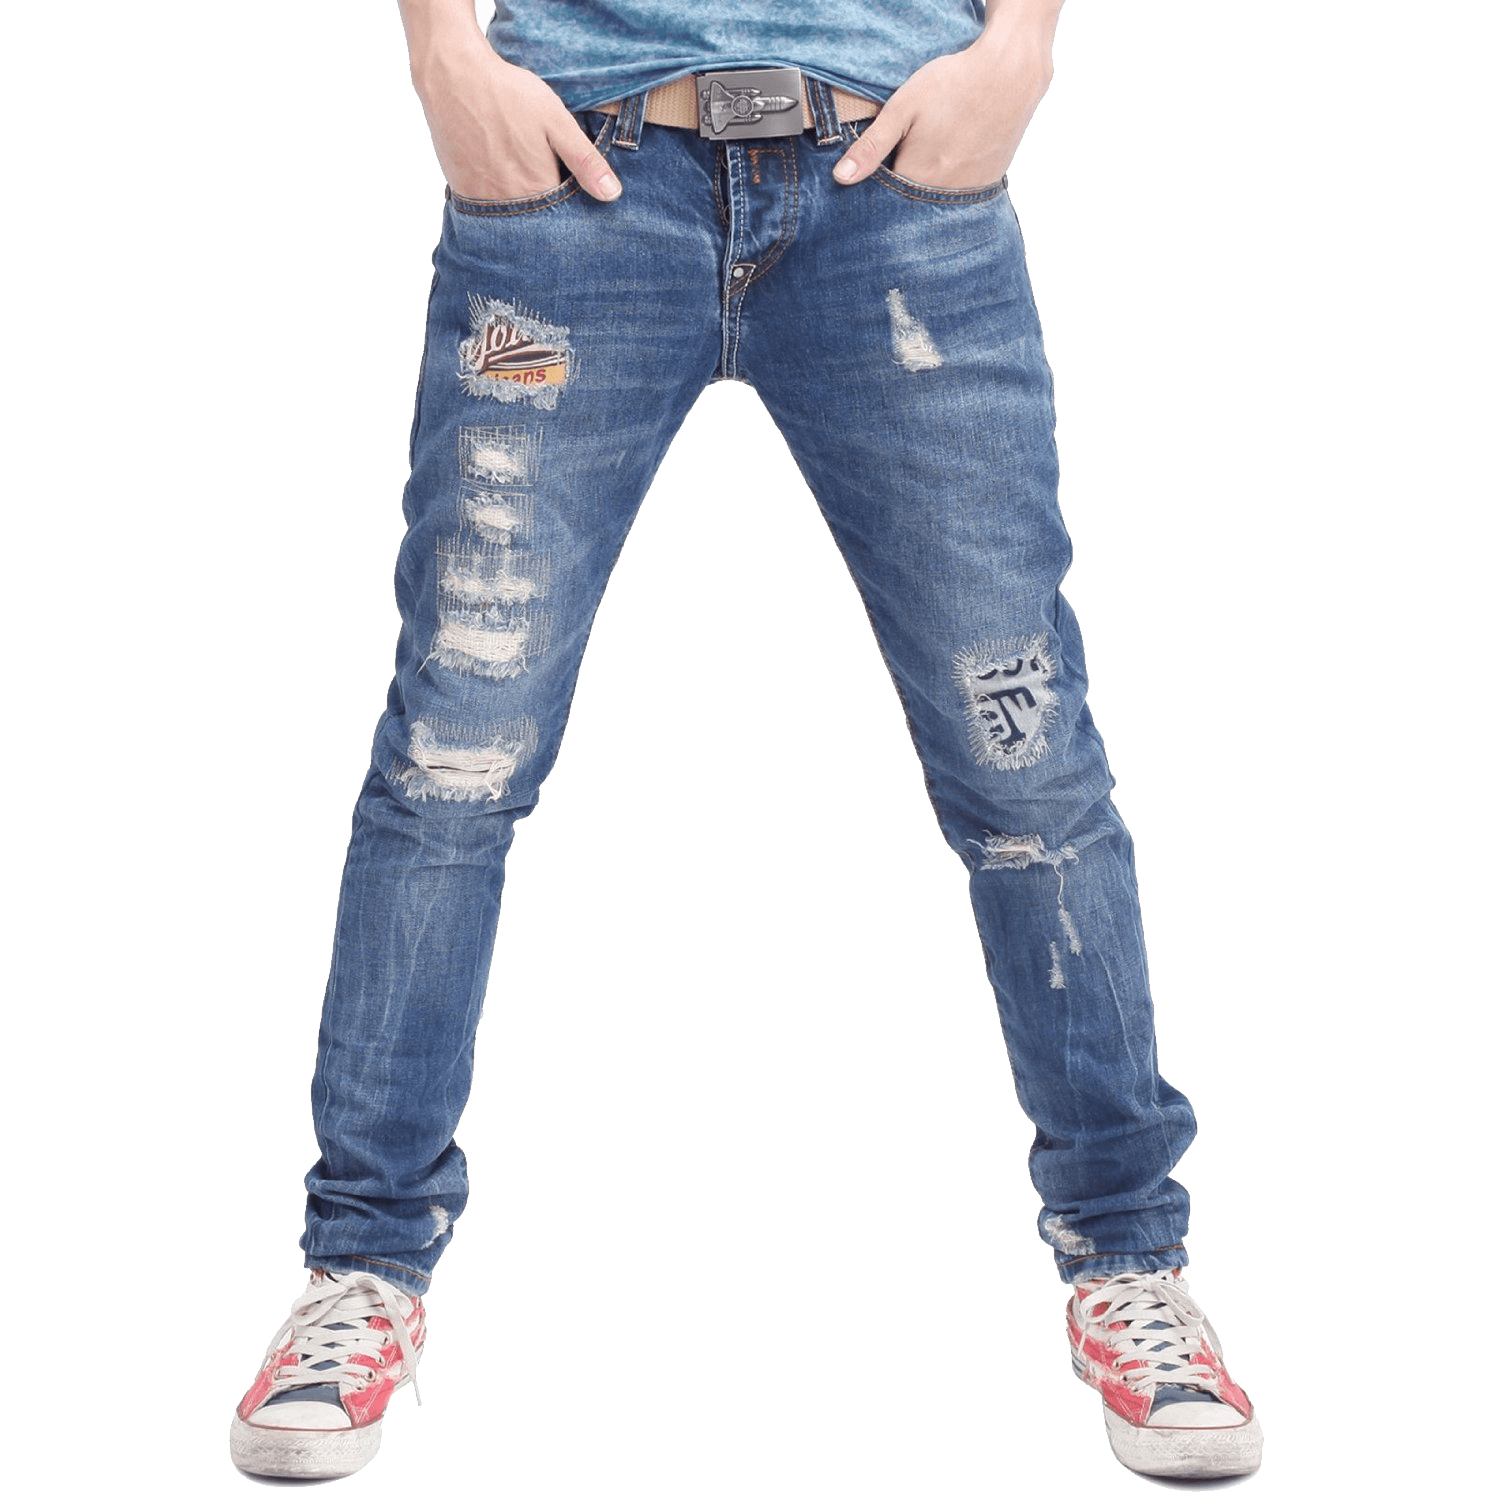 download jeans png image png image pngimg